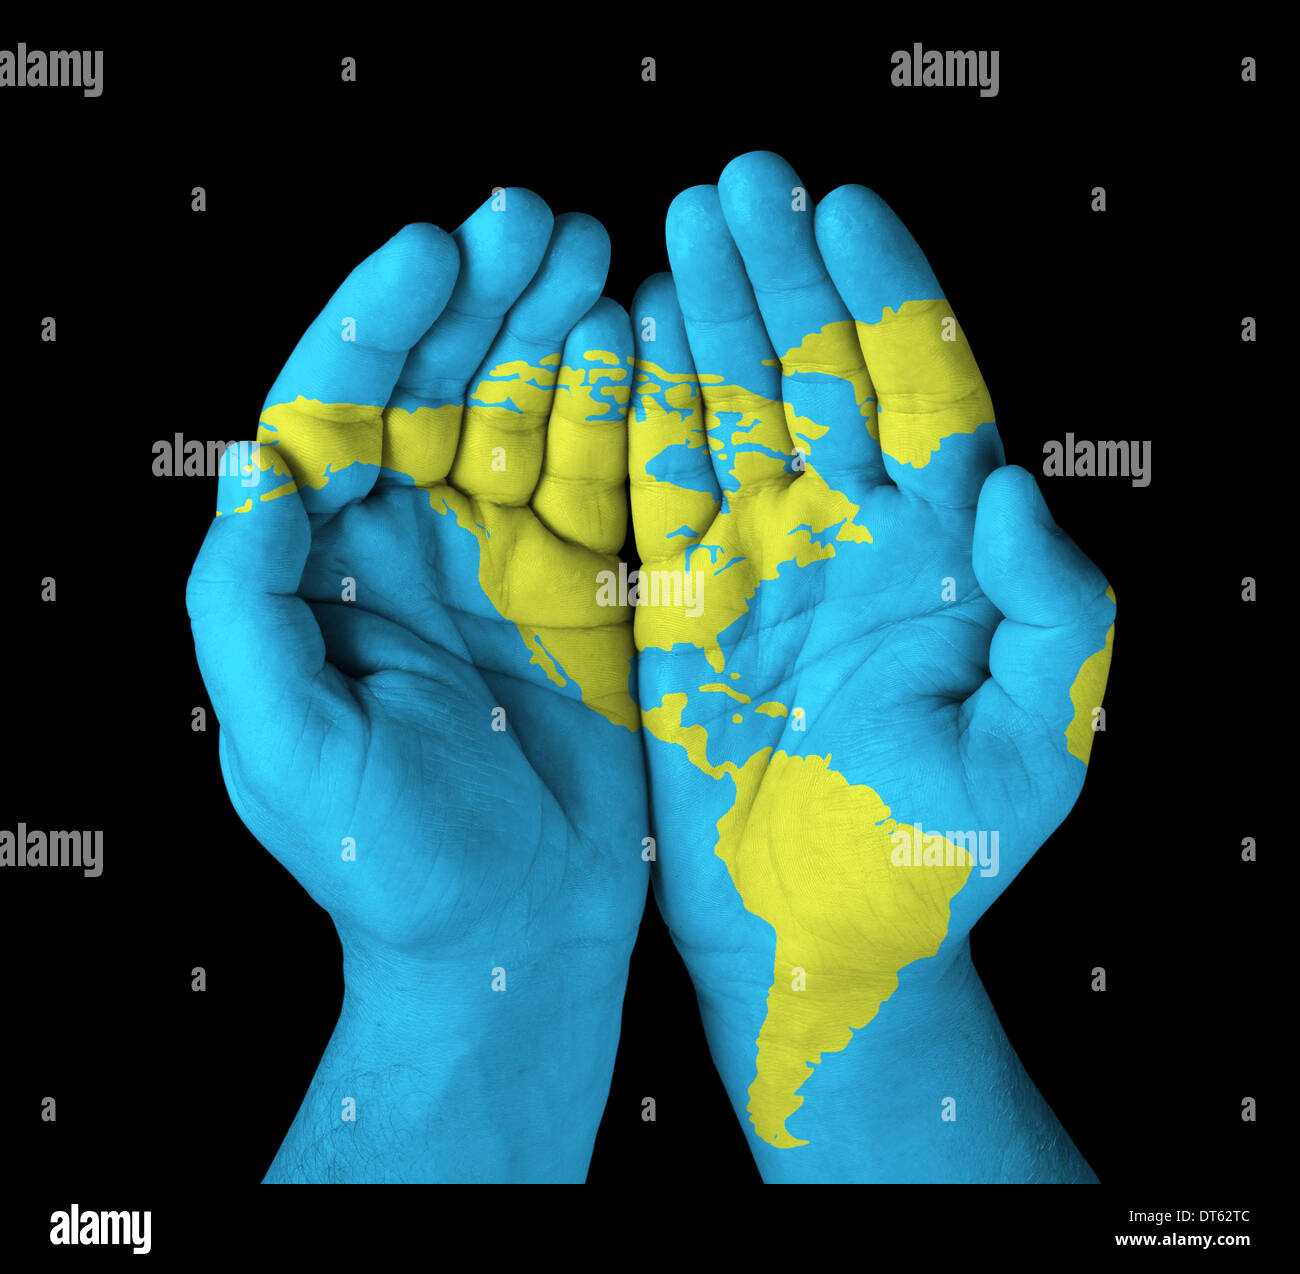 World map painted on hands stock photo royalty free image world map painted on hands gumiabroncs Images